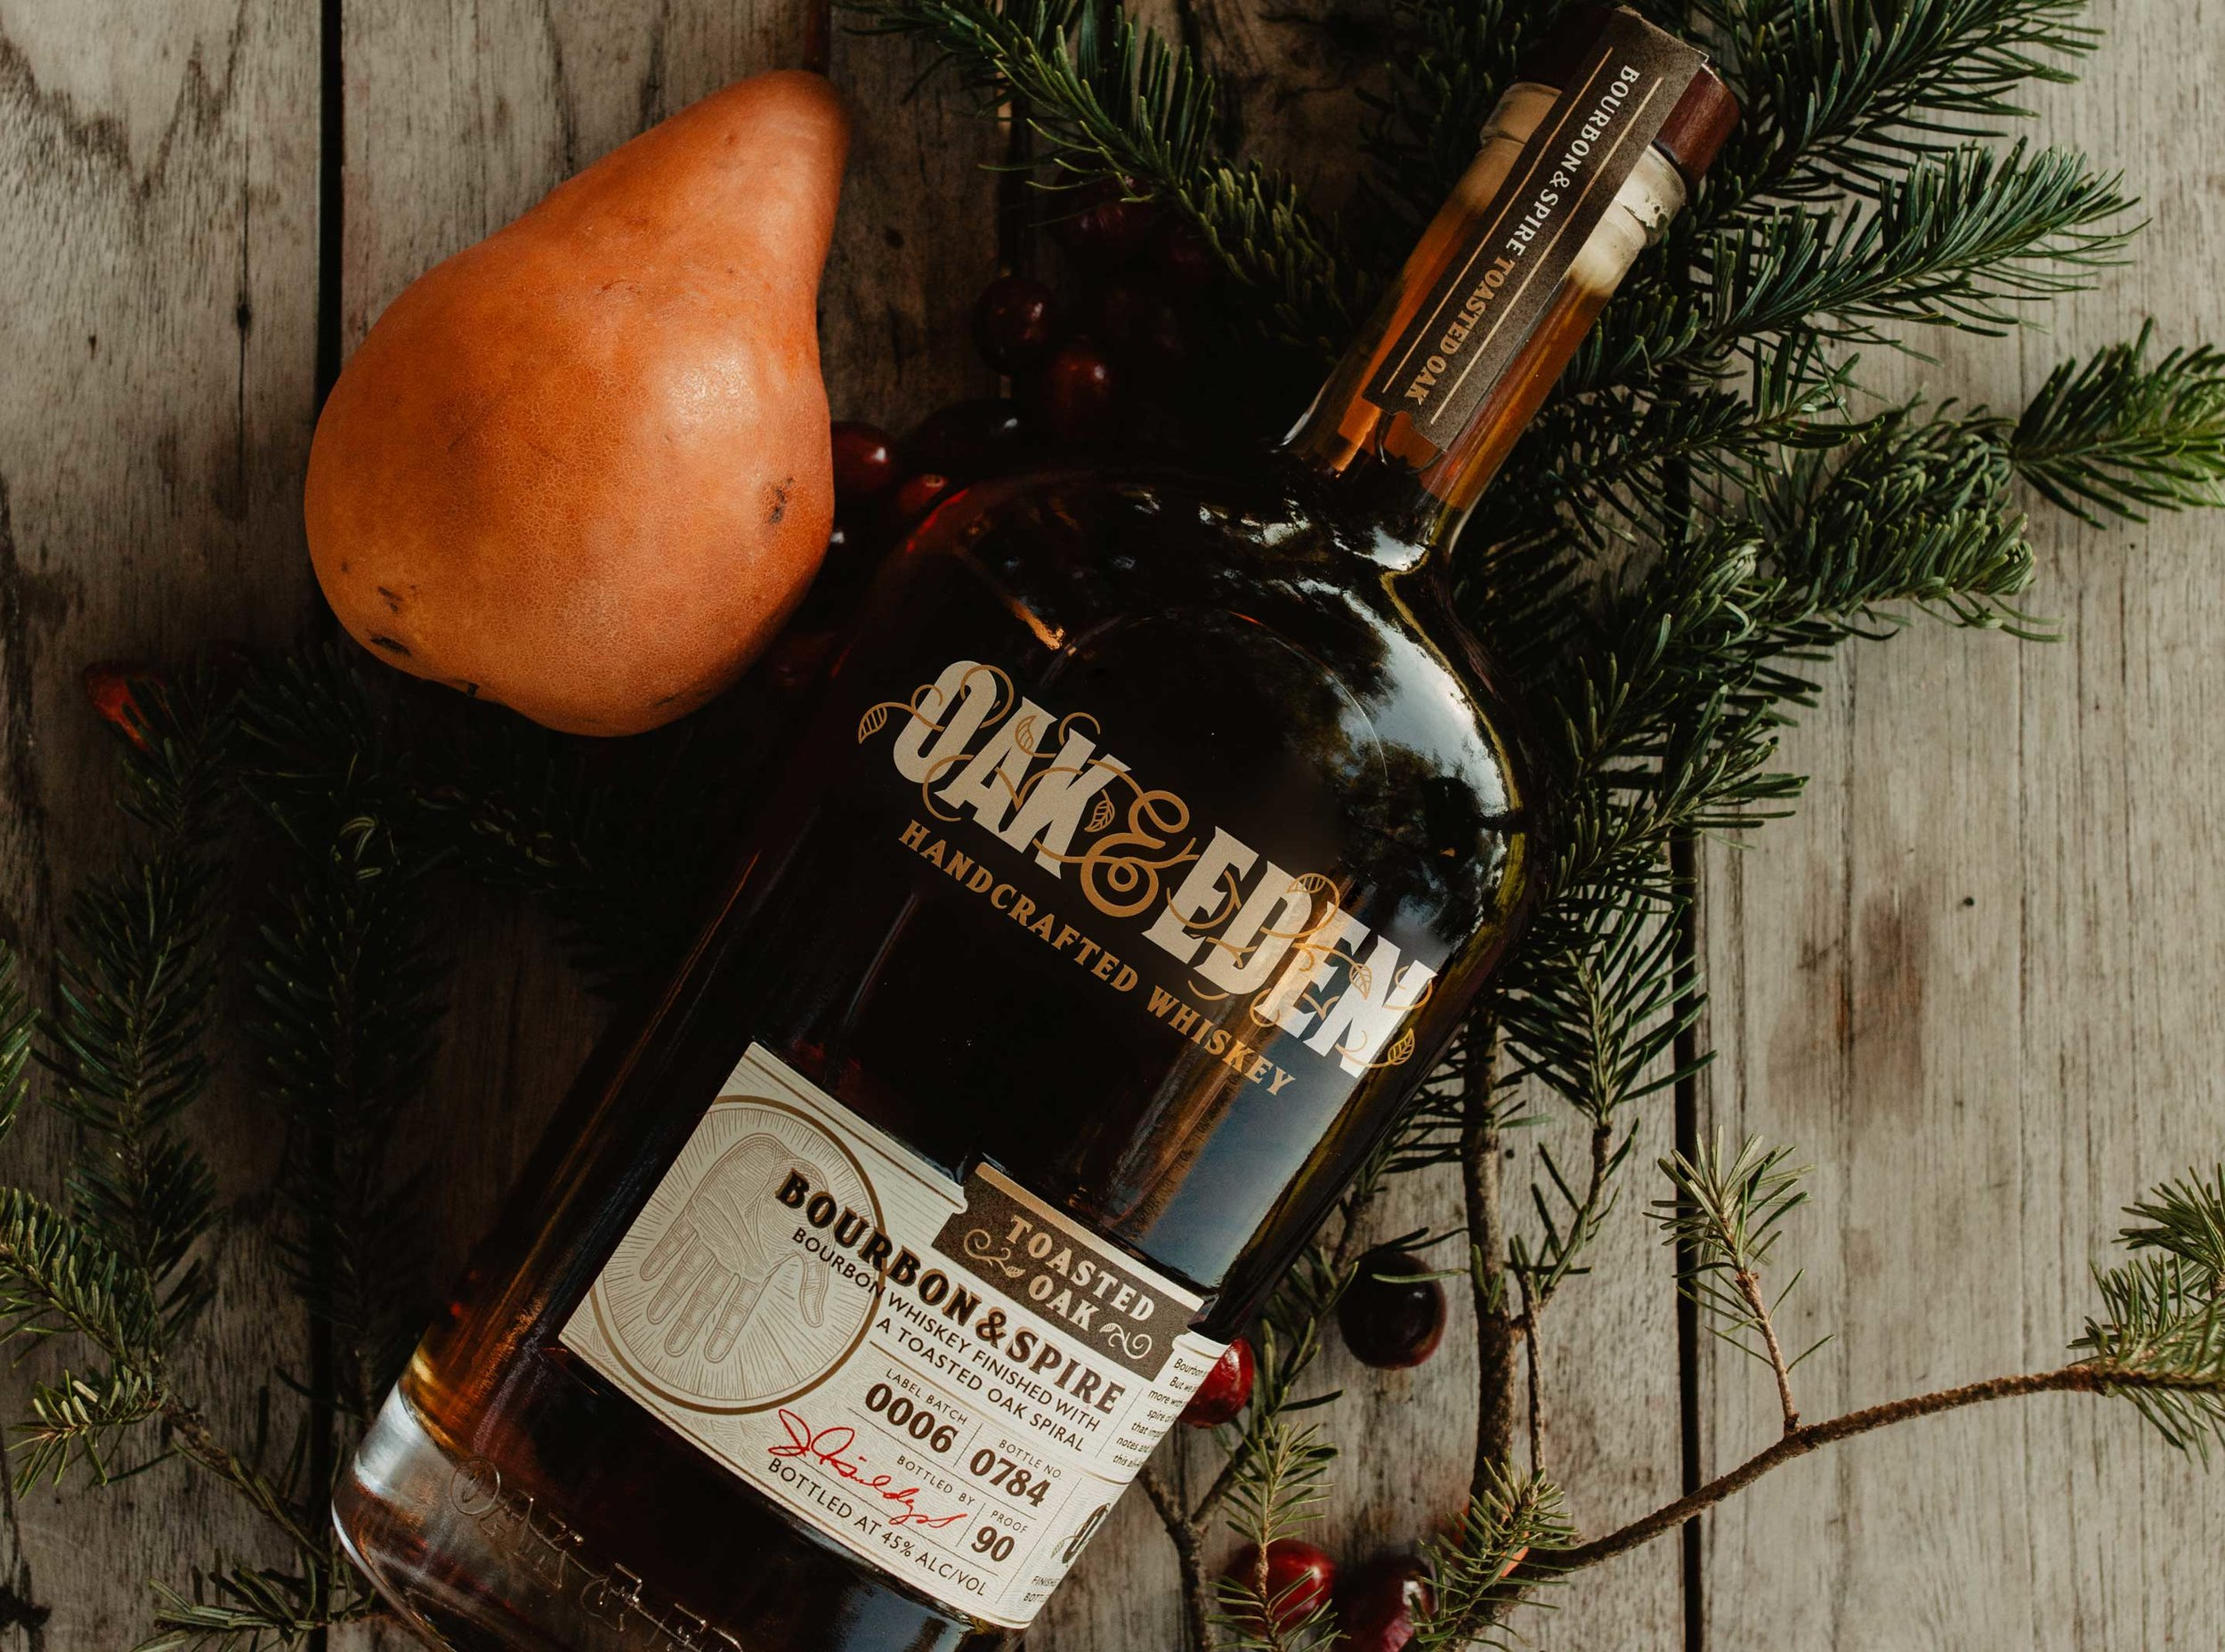 Oak & Eden Christmas 2018 Cocktail Recipes